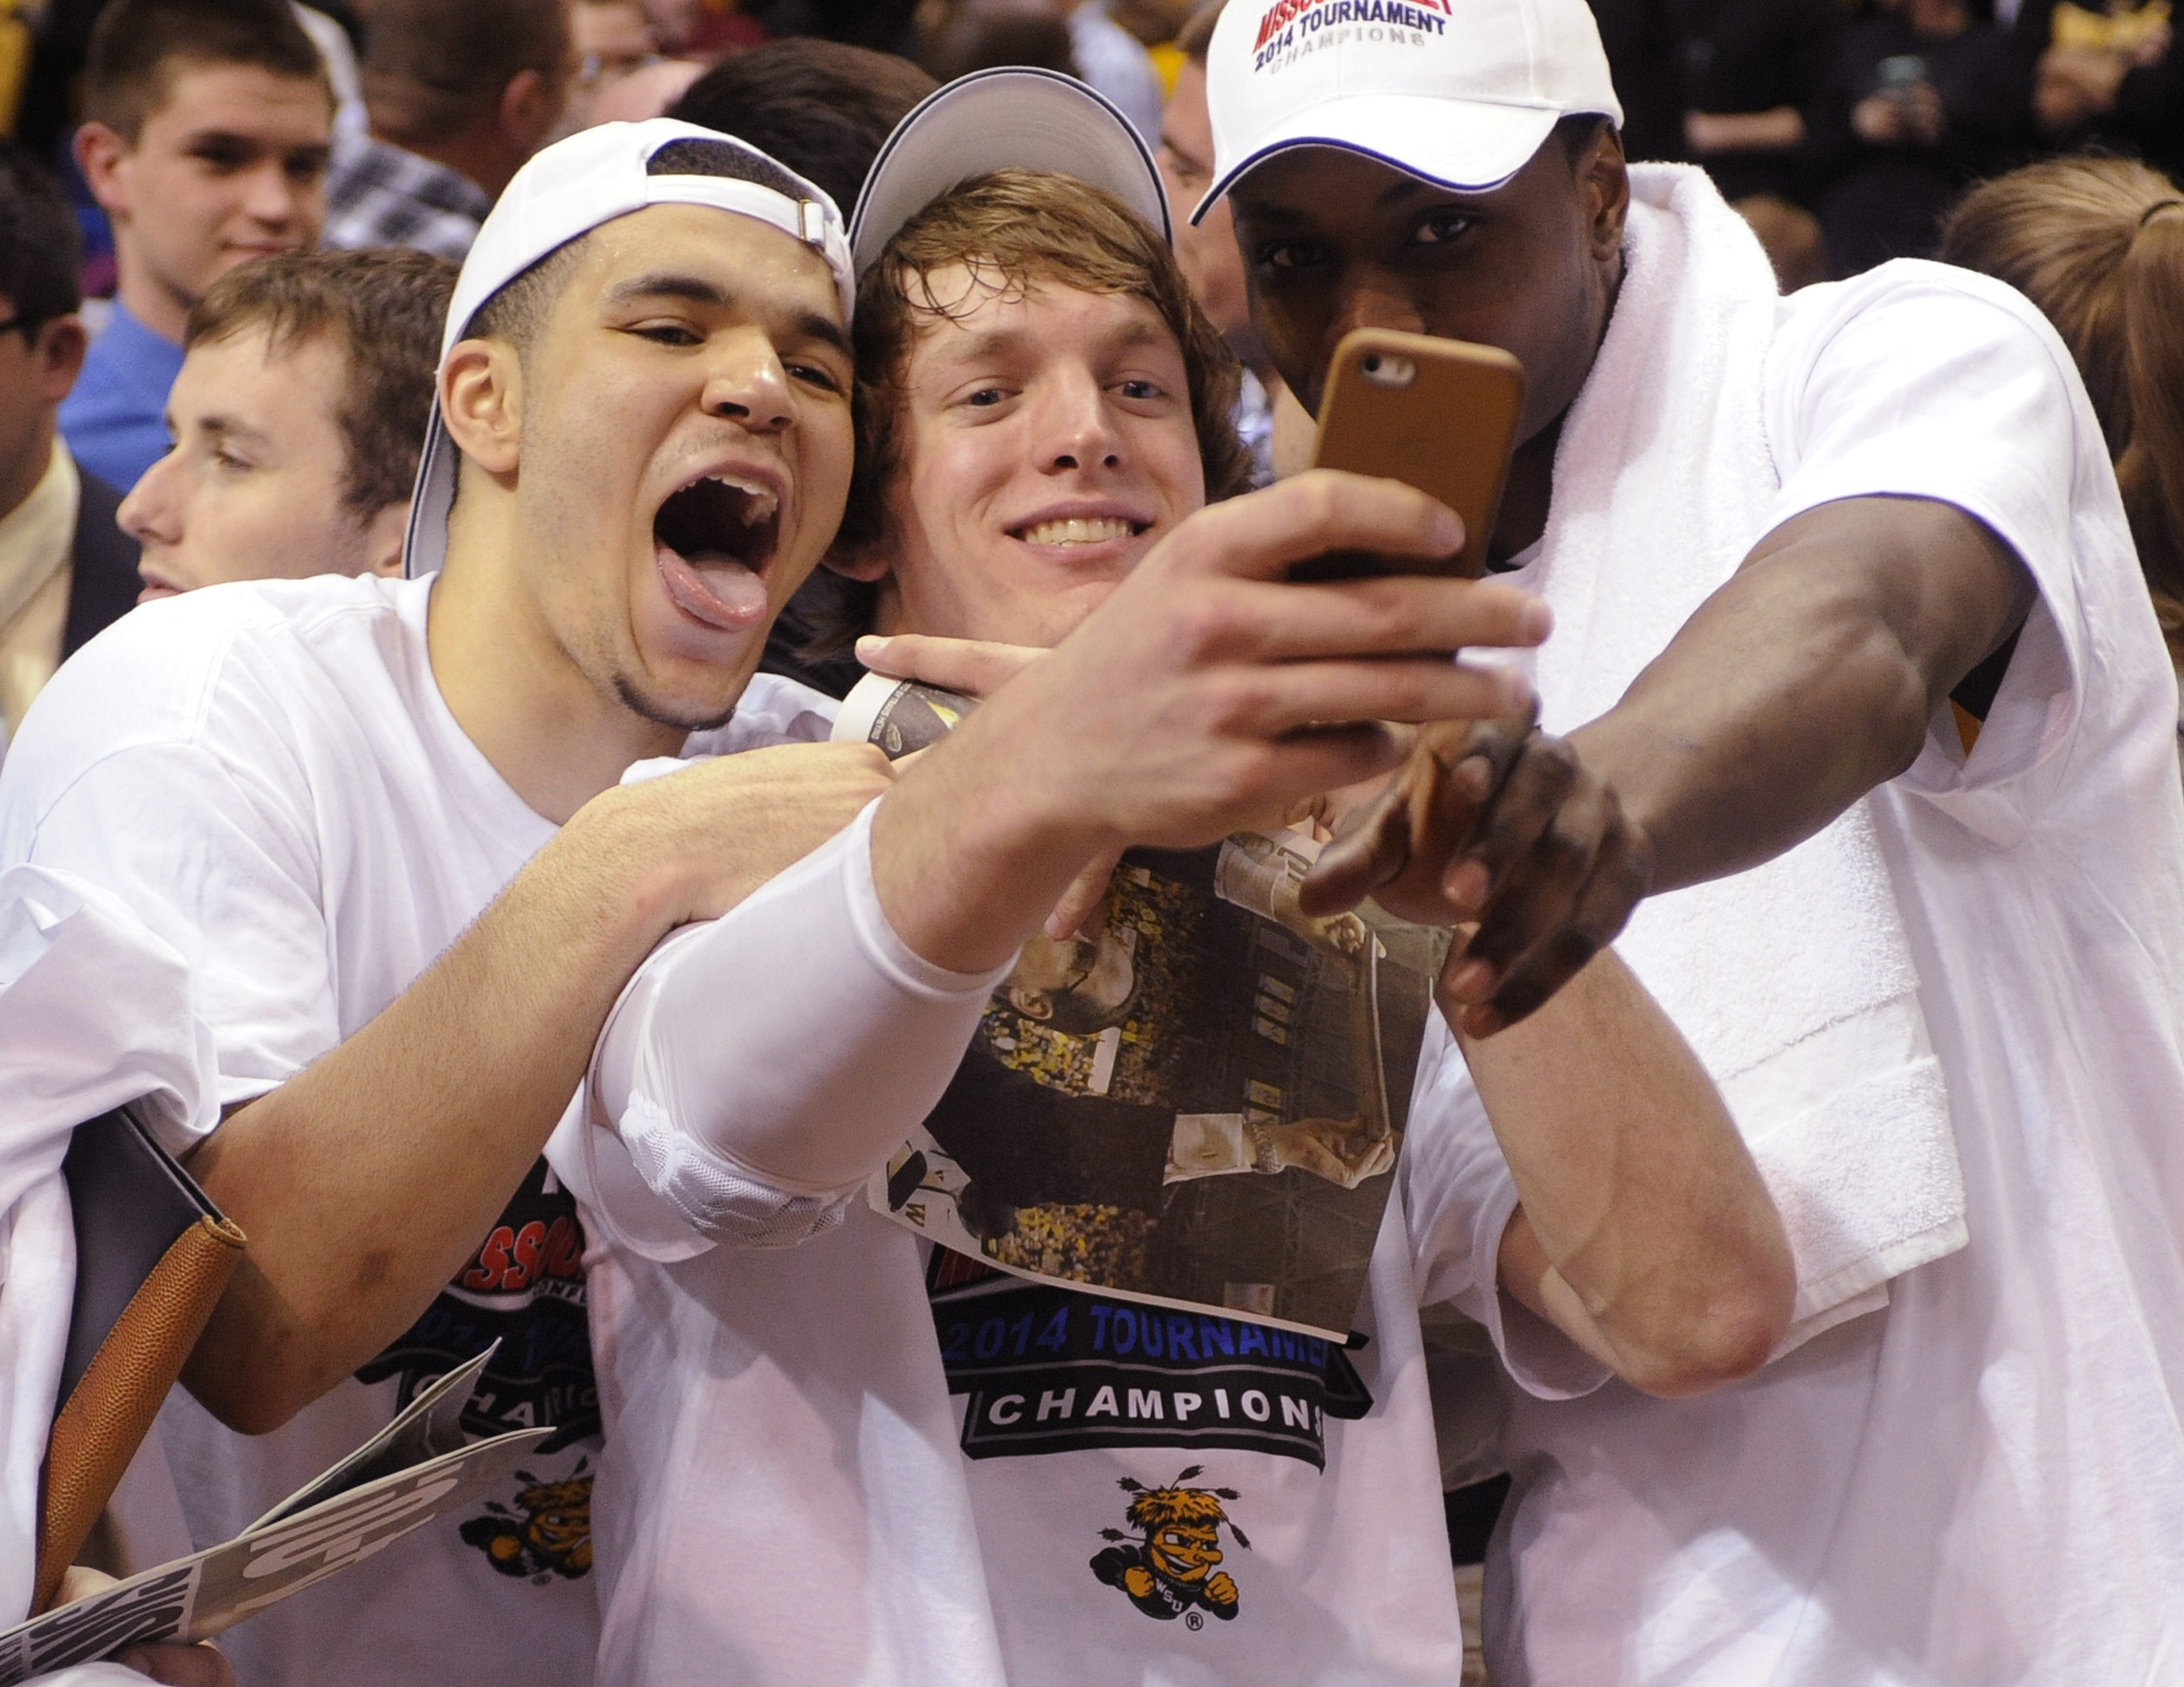 Wichita State's Ron Baker, center, takes a photo with Fred VanVleet, left, and Cleanthony Early, right, after their victory over Indiana State in the championship of the Missouri Valley Conference men's tournament March 9. A Cinderella team last year, the Shockers enter the NCAA tournament as a No. 1 seed this year. (AP Photo/Bill Boyce)